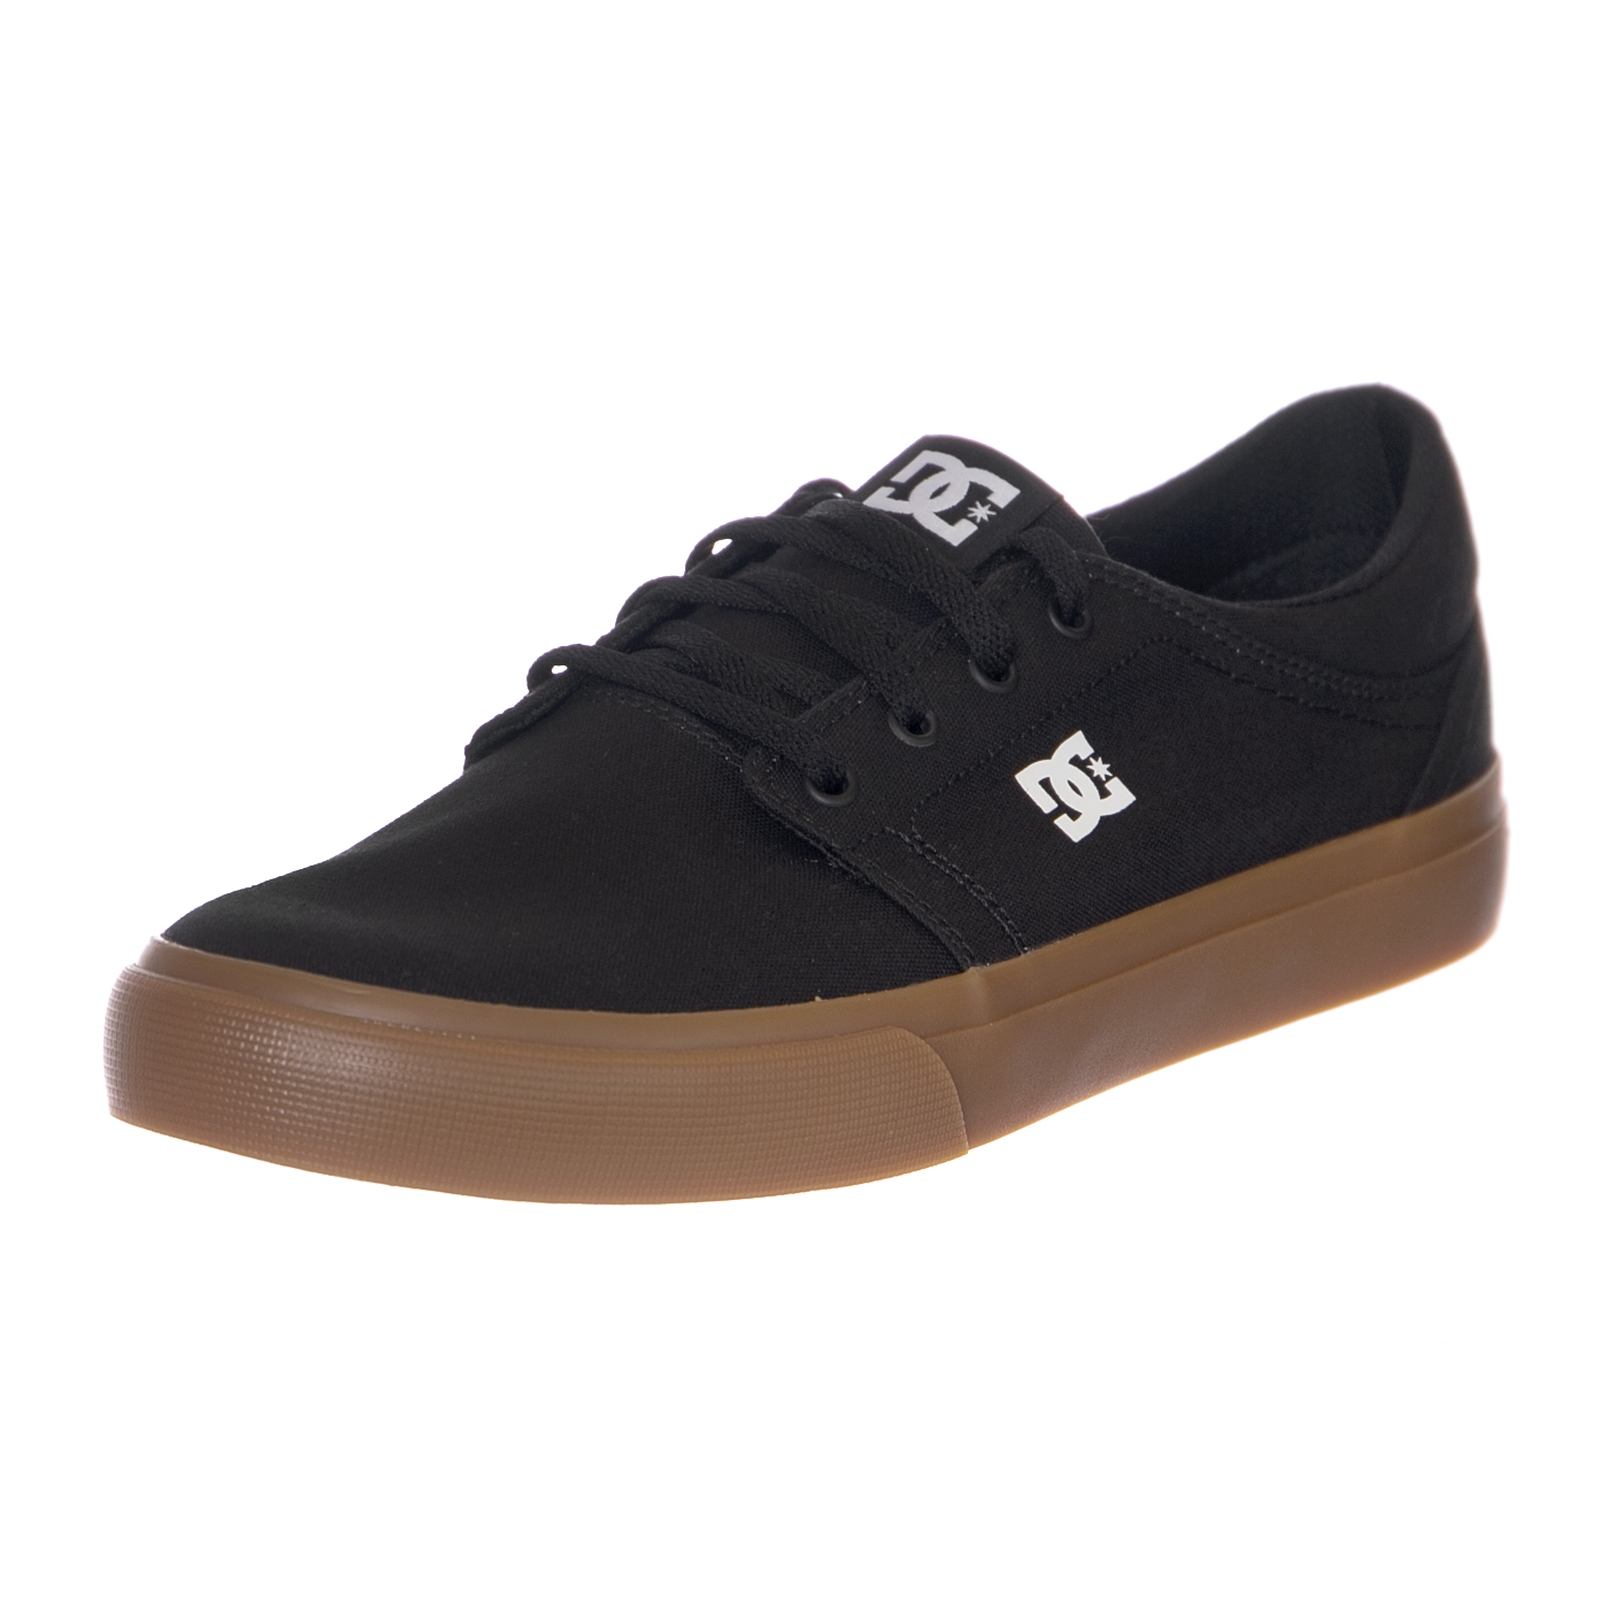 c33898faa06 Dc Sneakers DC Shoes Trase Tx Black Gum Black